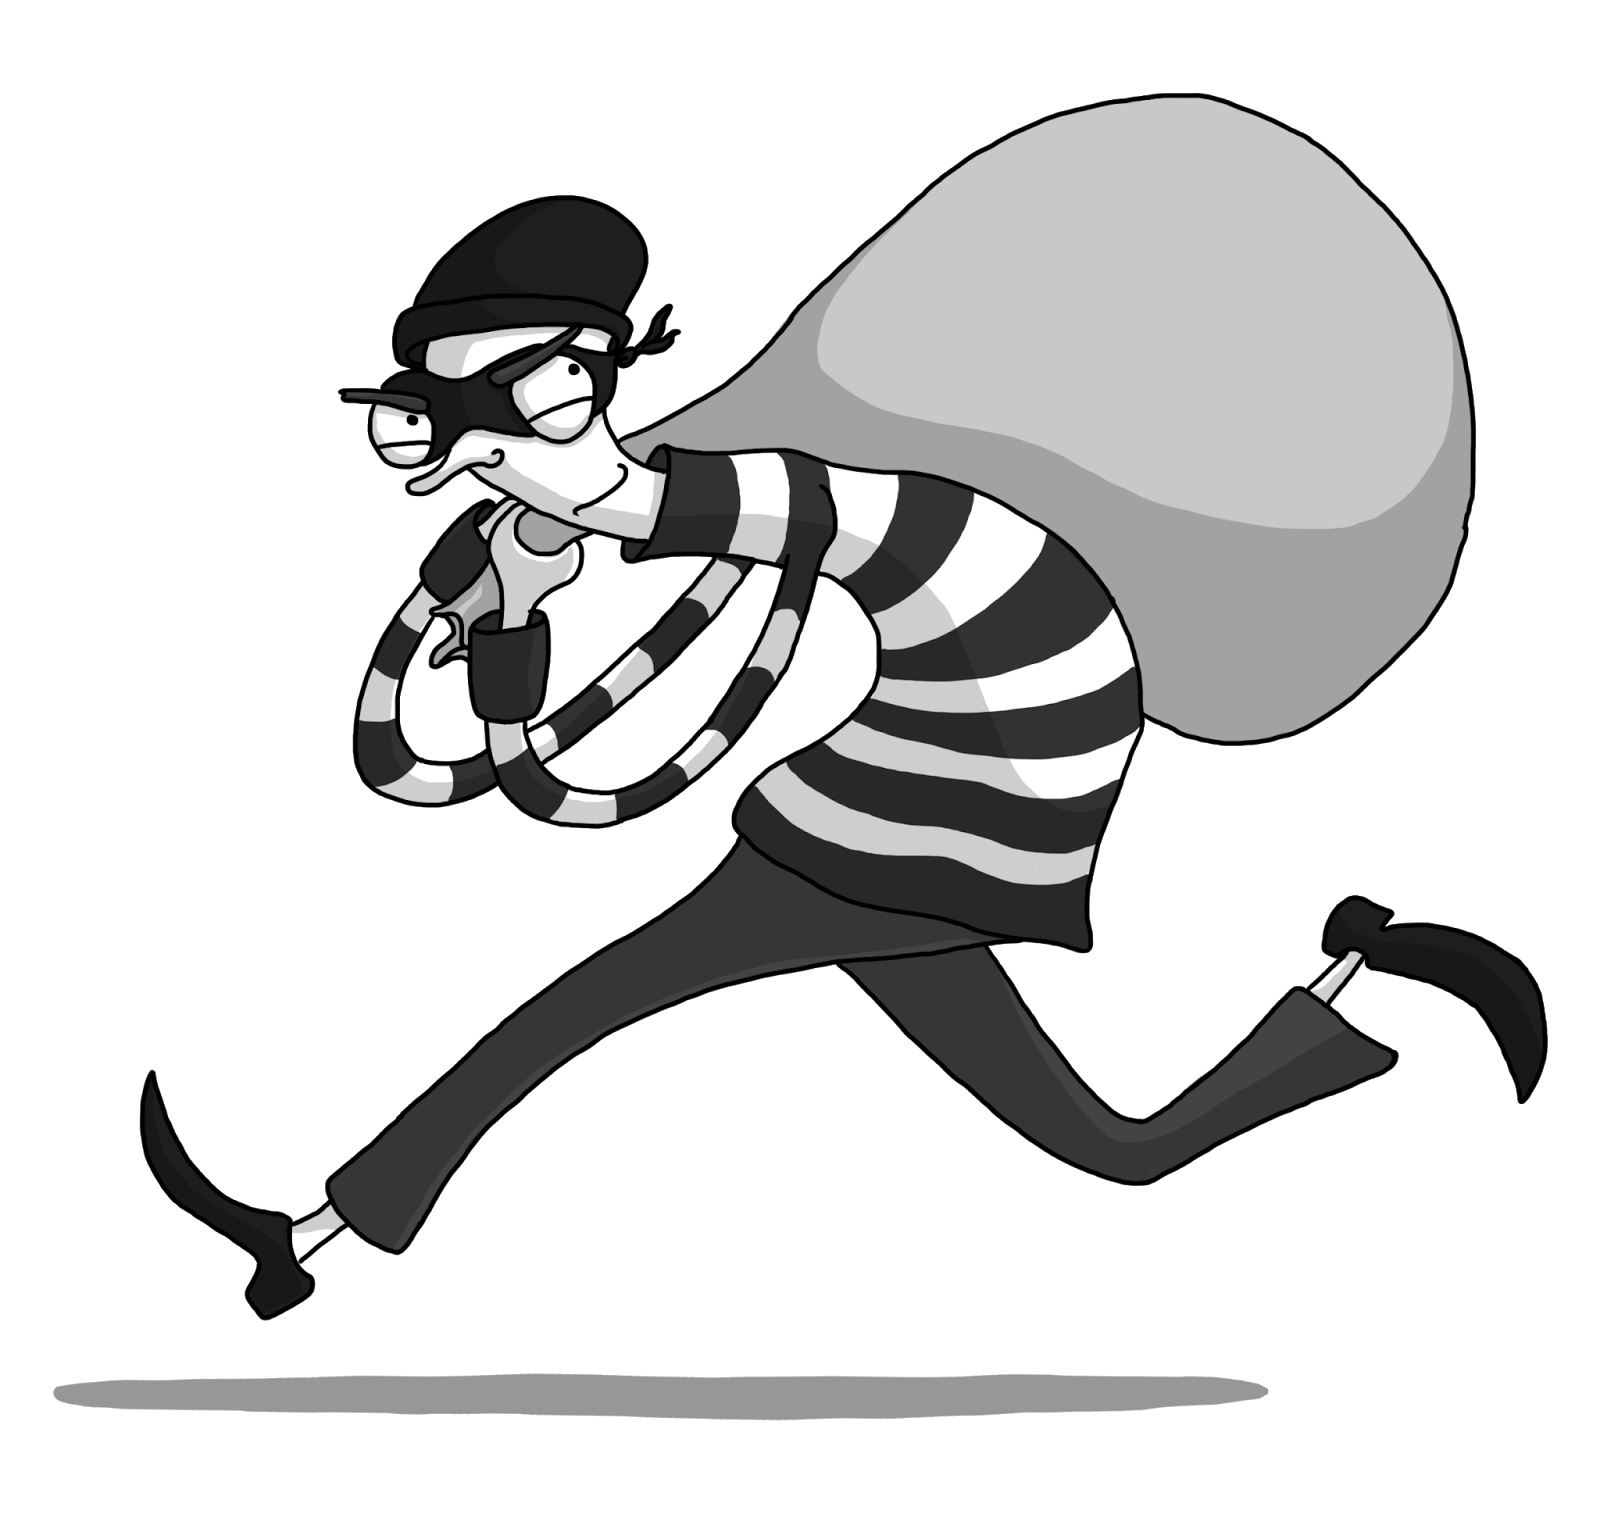 Free robber cliparts download. Crime clipart shoplifting